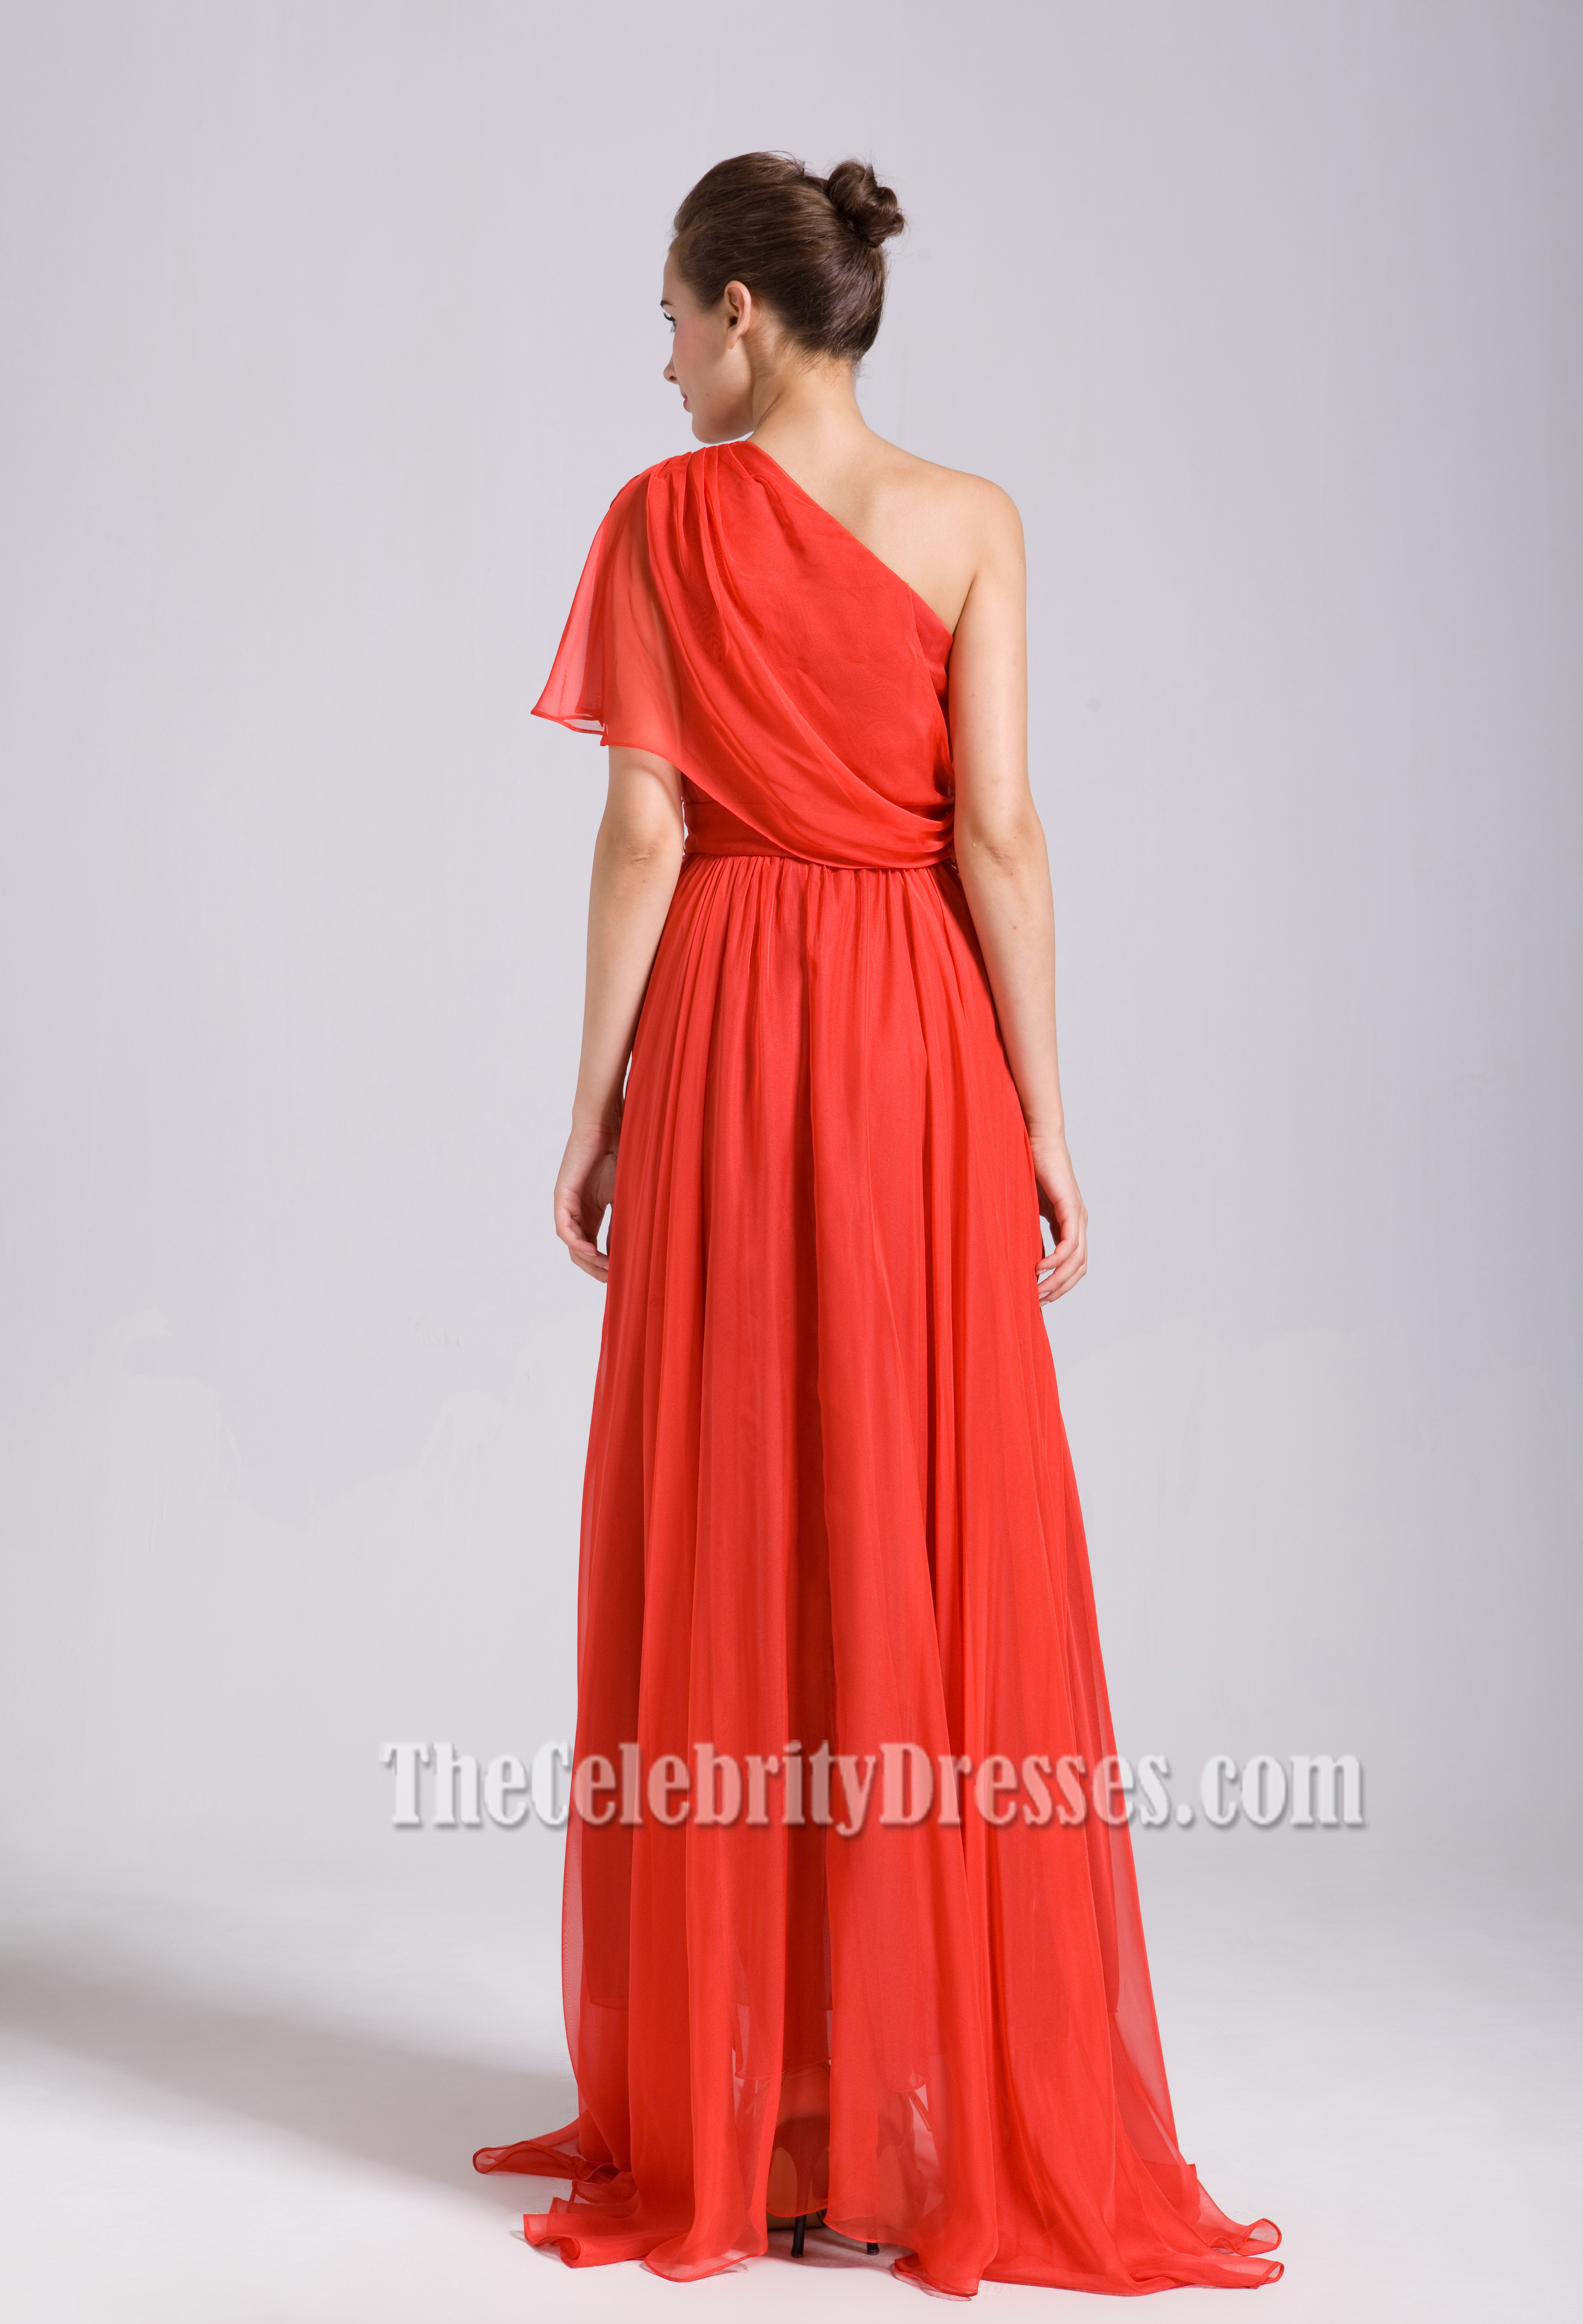 Celebrity inspired red one shoulder prom bridesmaid dresses celebrity inspired red one shoulder prom bridesmaid dresses thecelebritydresses ombrellifo Choice Image